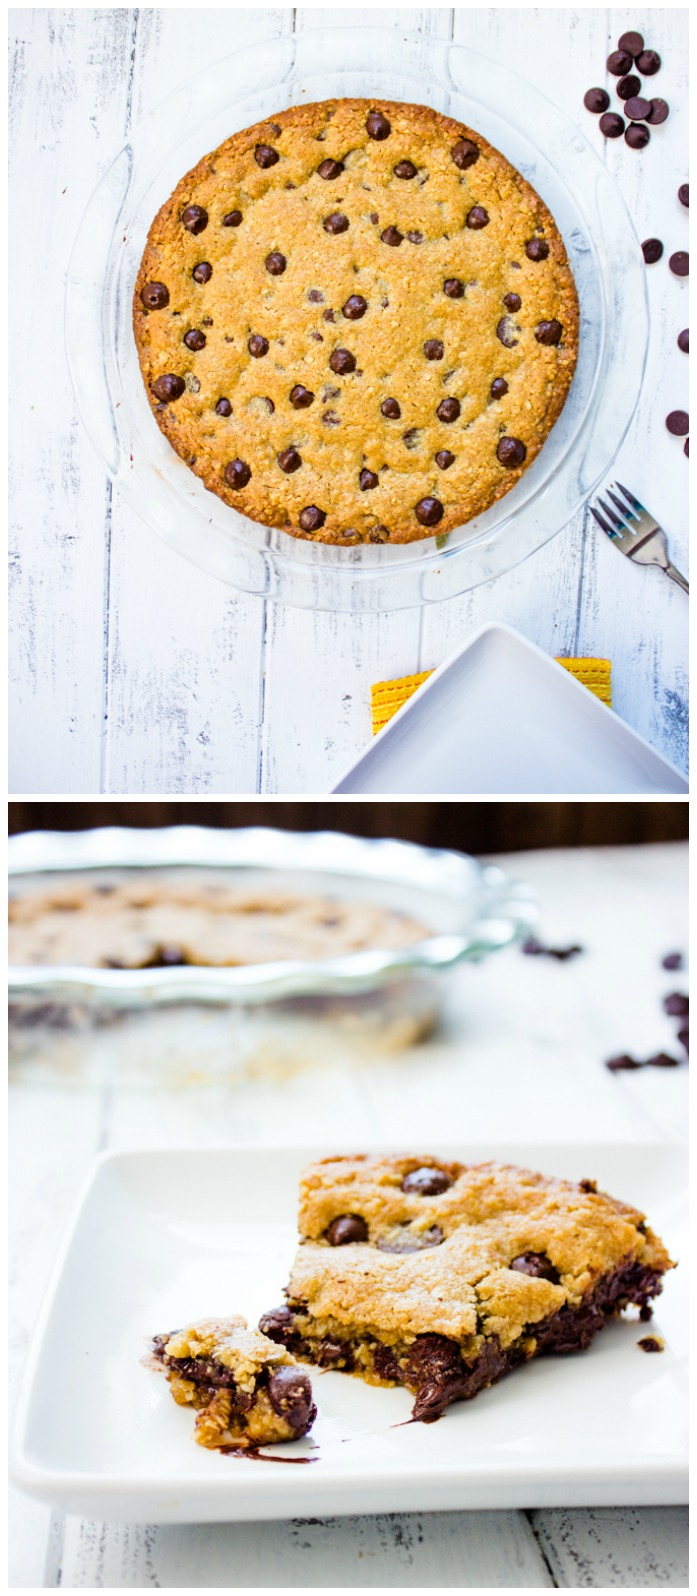 The Perfect Oatmeal Chocolate Chip Cookie Pie | Gimme Delicious